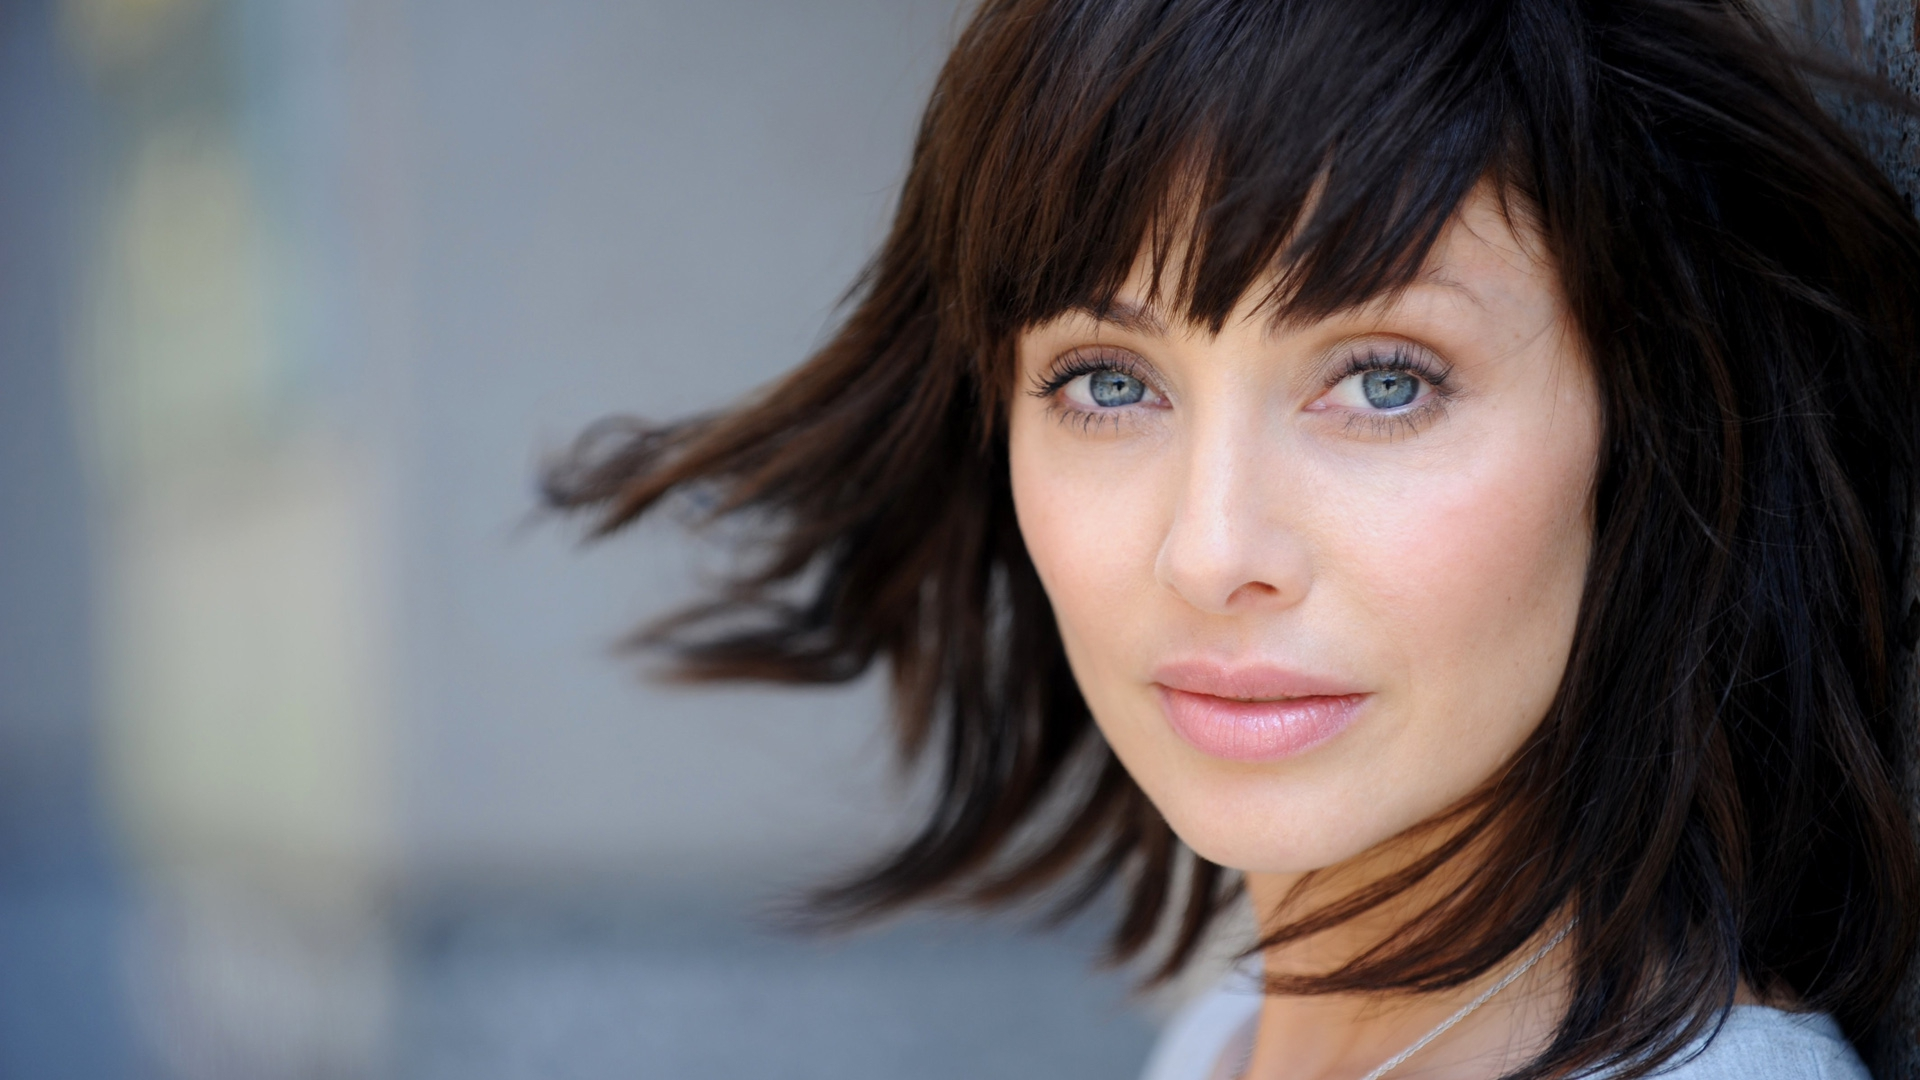 Natalie Imbruglia Sexy Wallpapers